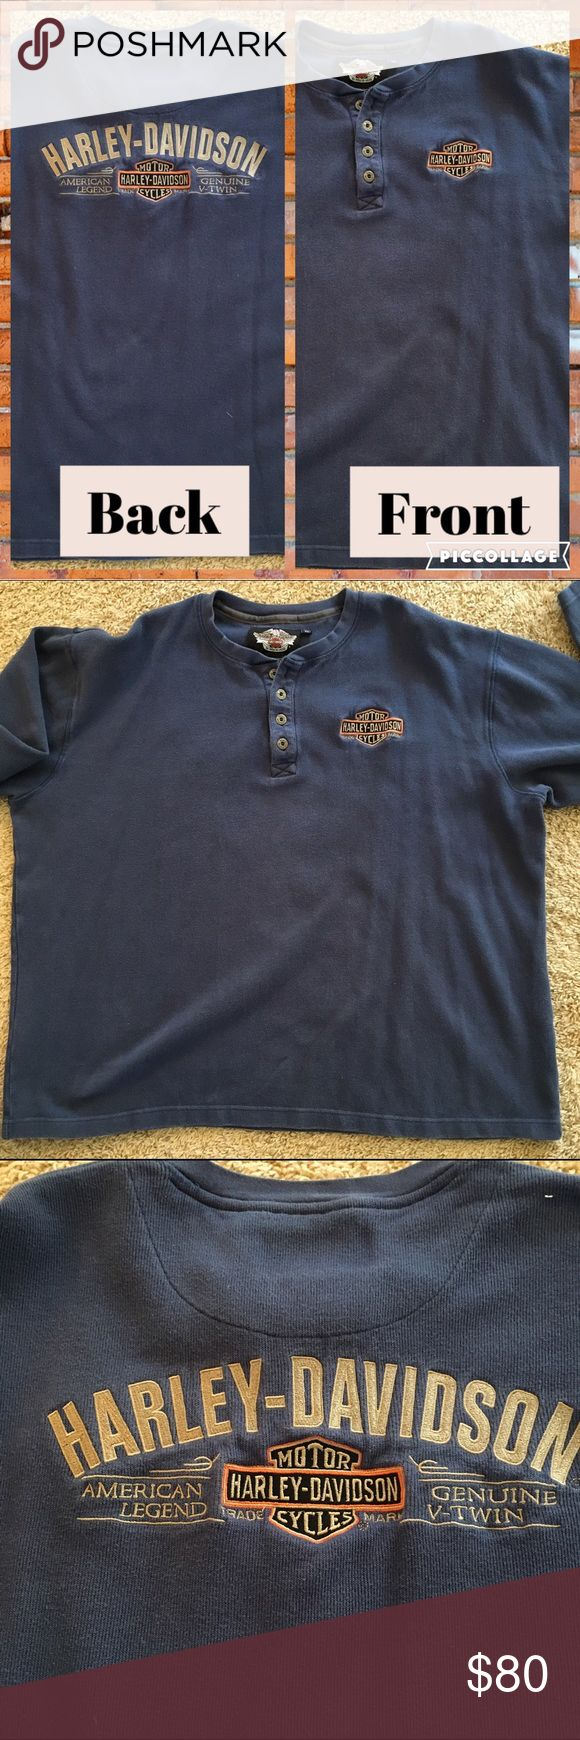 👔Harley Davidson👔 MENS longsleeved thermo shirt 👔Harley Davidson👔 MENS longsleeved cobalt blue thermal shirt. Worn one time.   4 logo buttons at neckline. Front and back embroidered  Harley Davidson logo in tan. Size is Tall XXL but it fits like a reg XXL excellent condition Harley-Davidson Sweaters